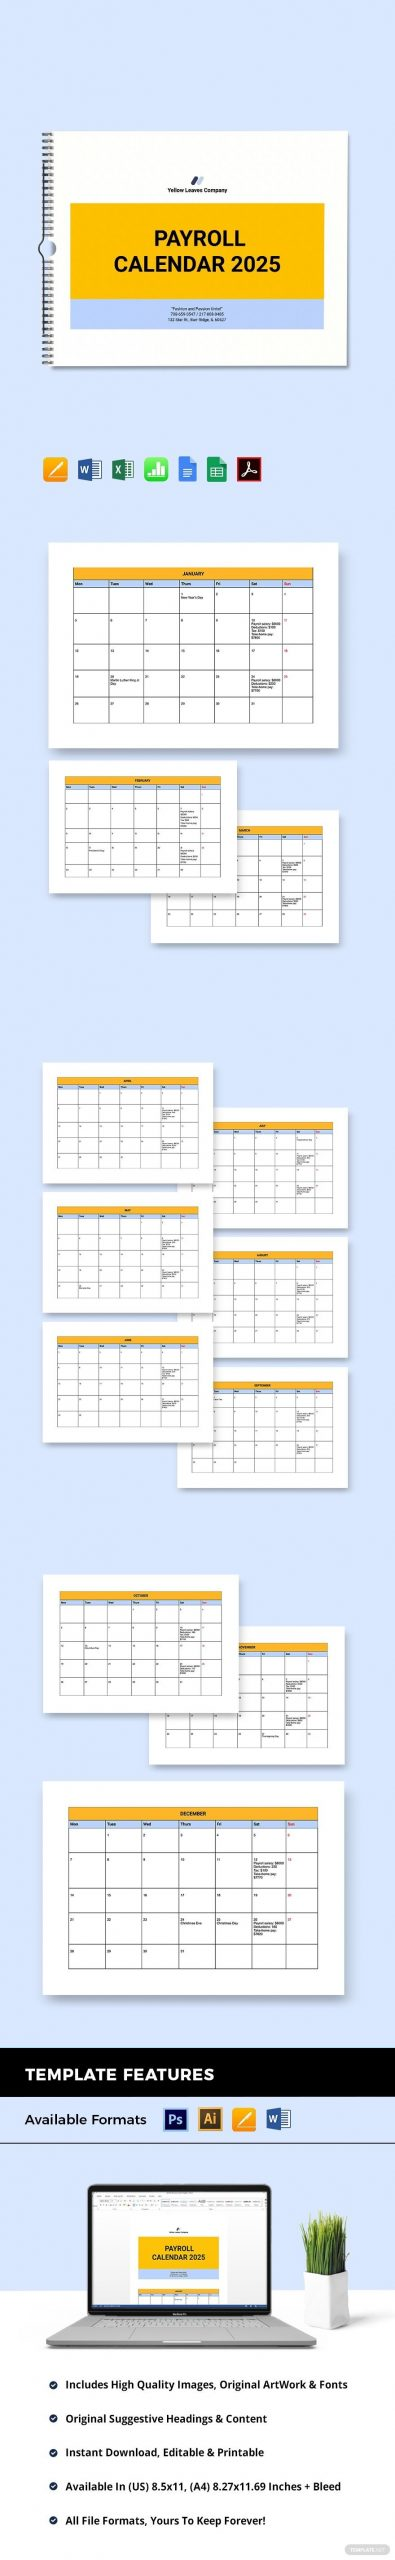 Pin On Financial Logo Galleries Example Of Editable Payroll Calendar